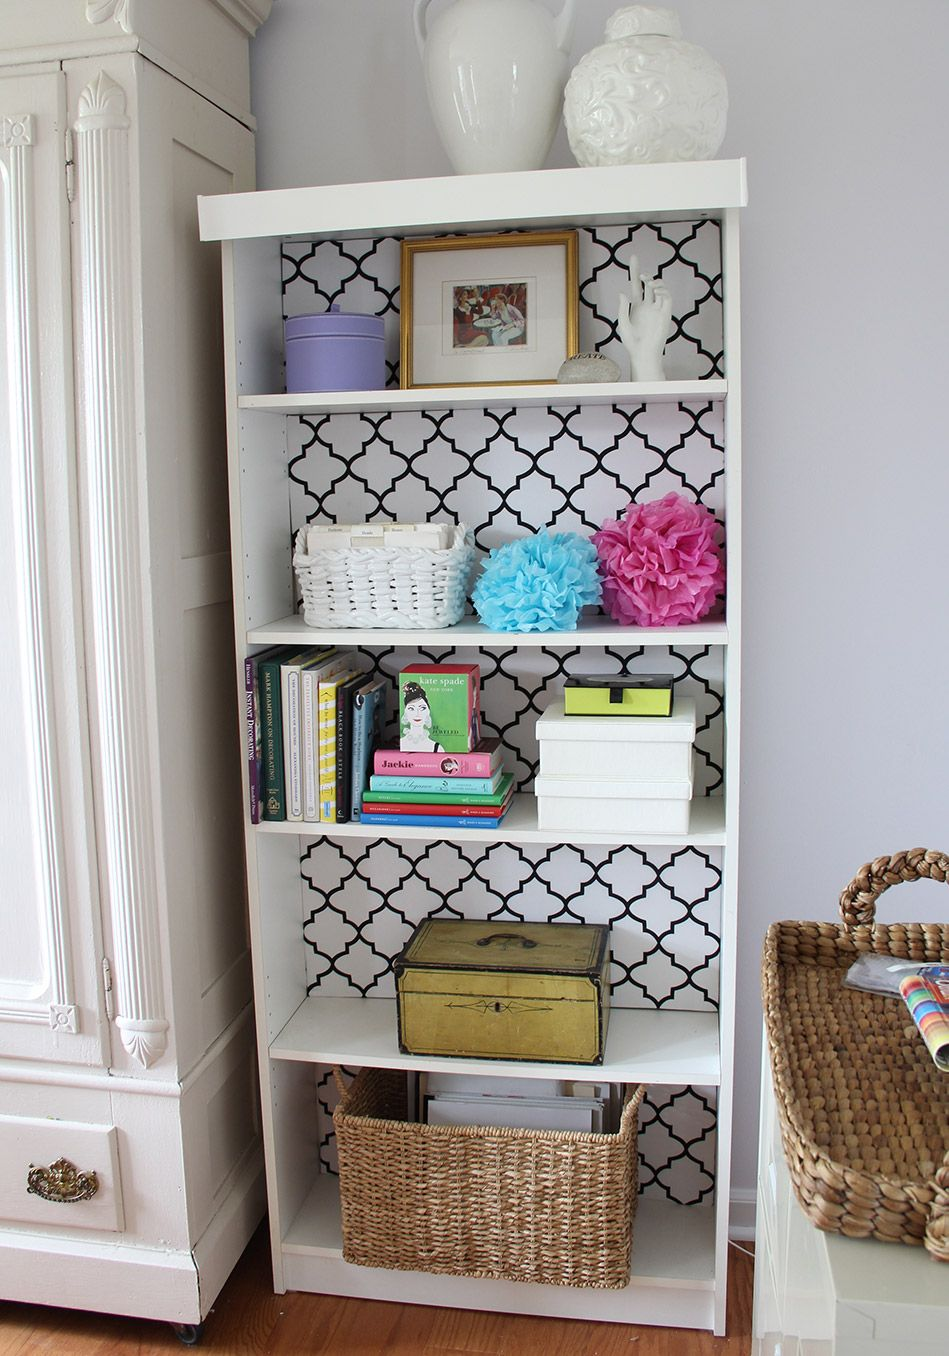 1000 images about decorating bookcases and shelves on pinterest - 6 Ways To Decorate Your Rental Without Losing The Deposit